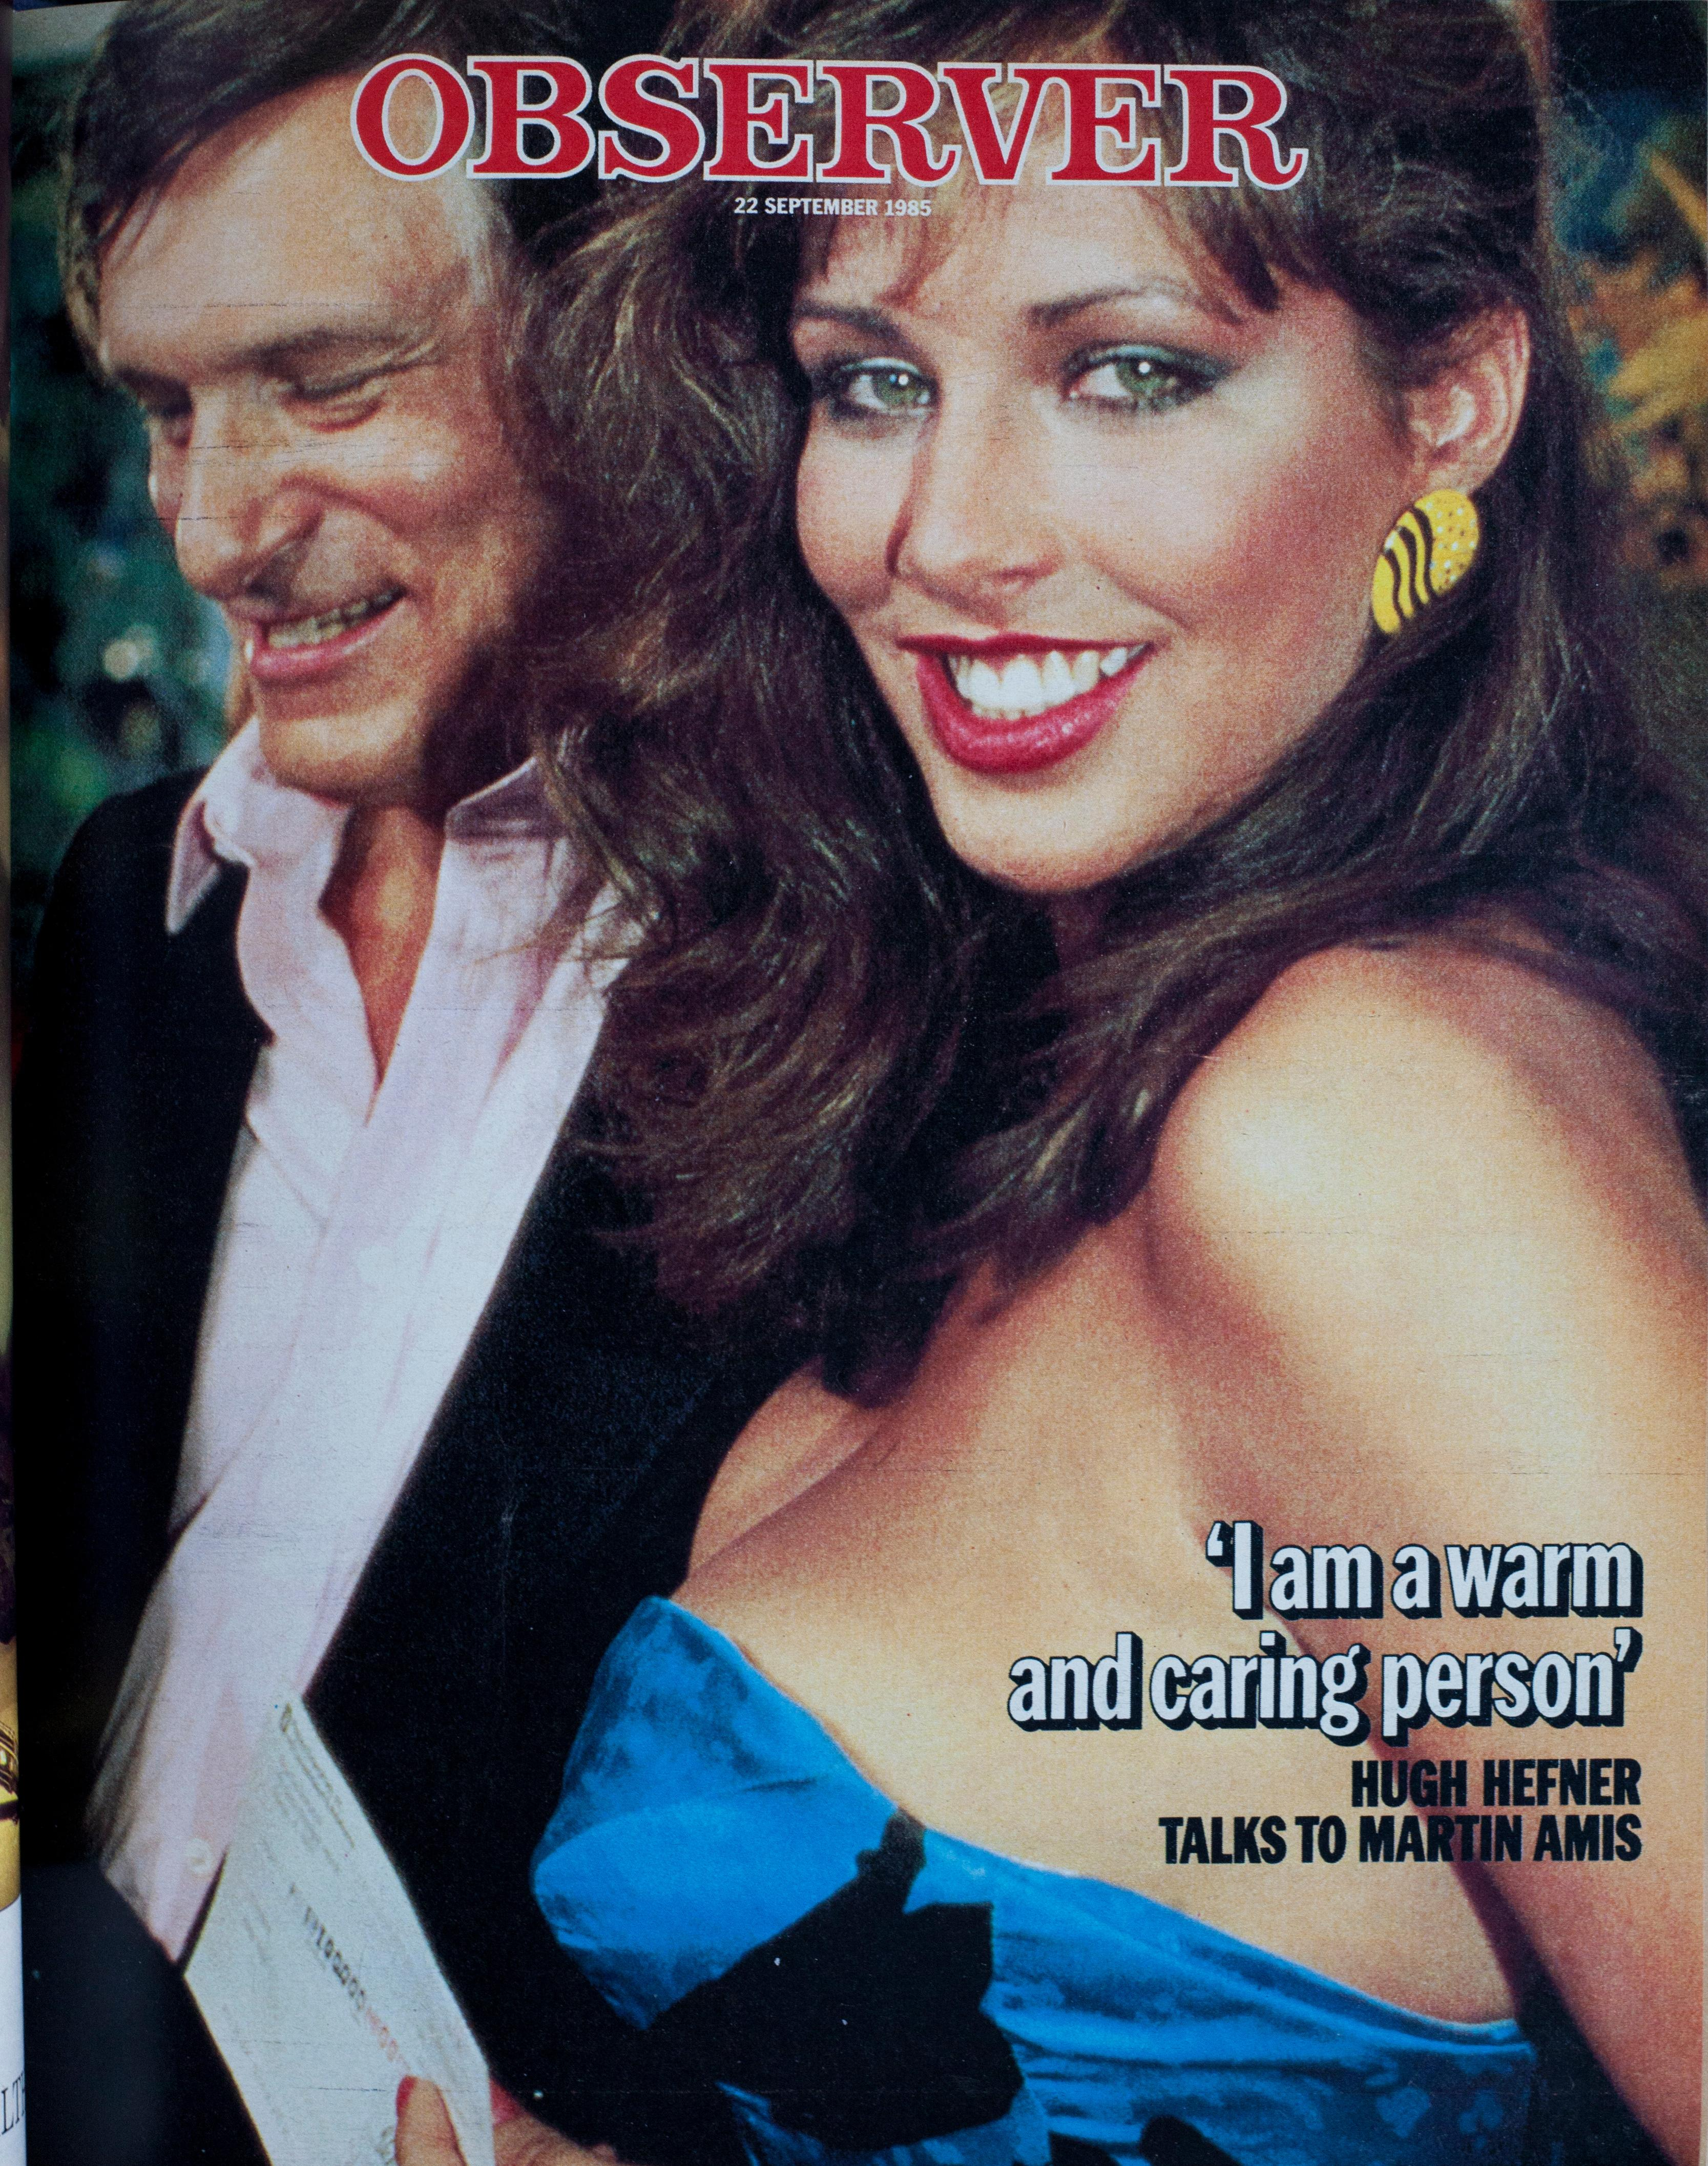 From the archive: Martin Amis meets Hugh Hefner